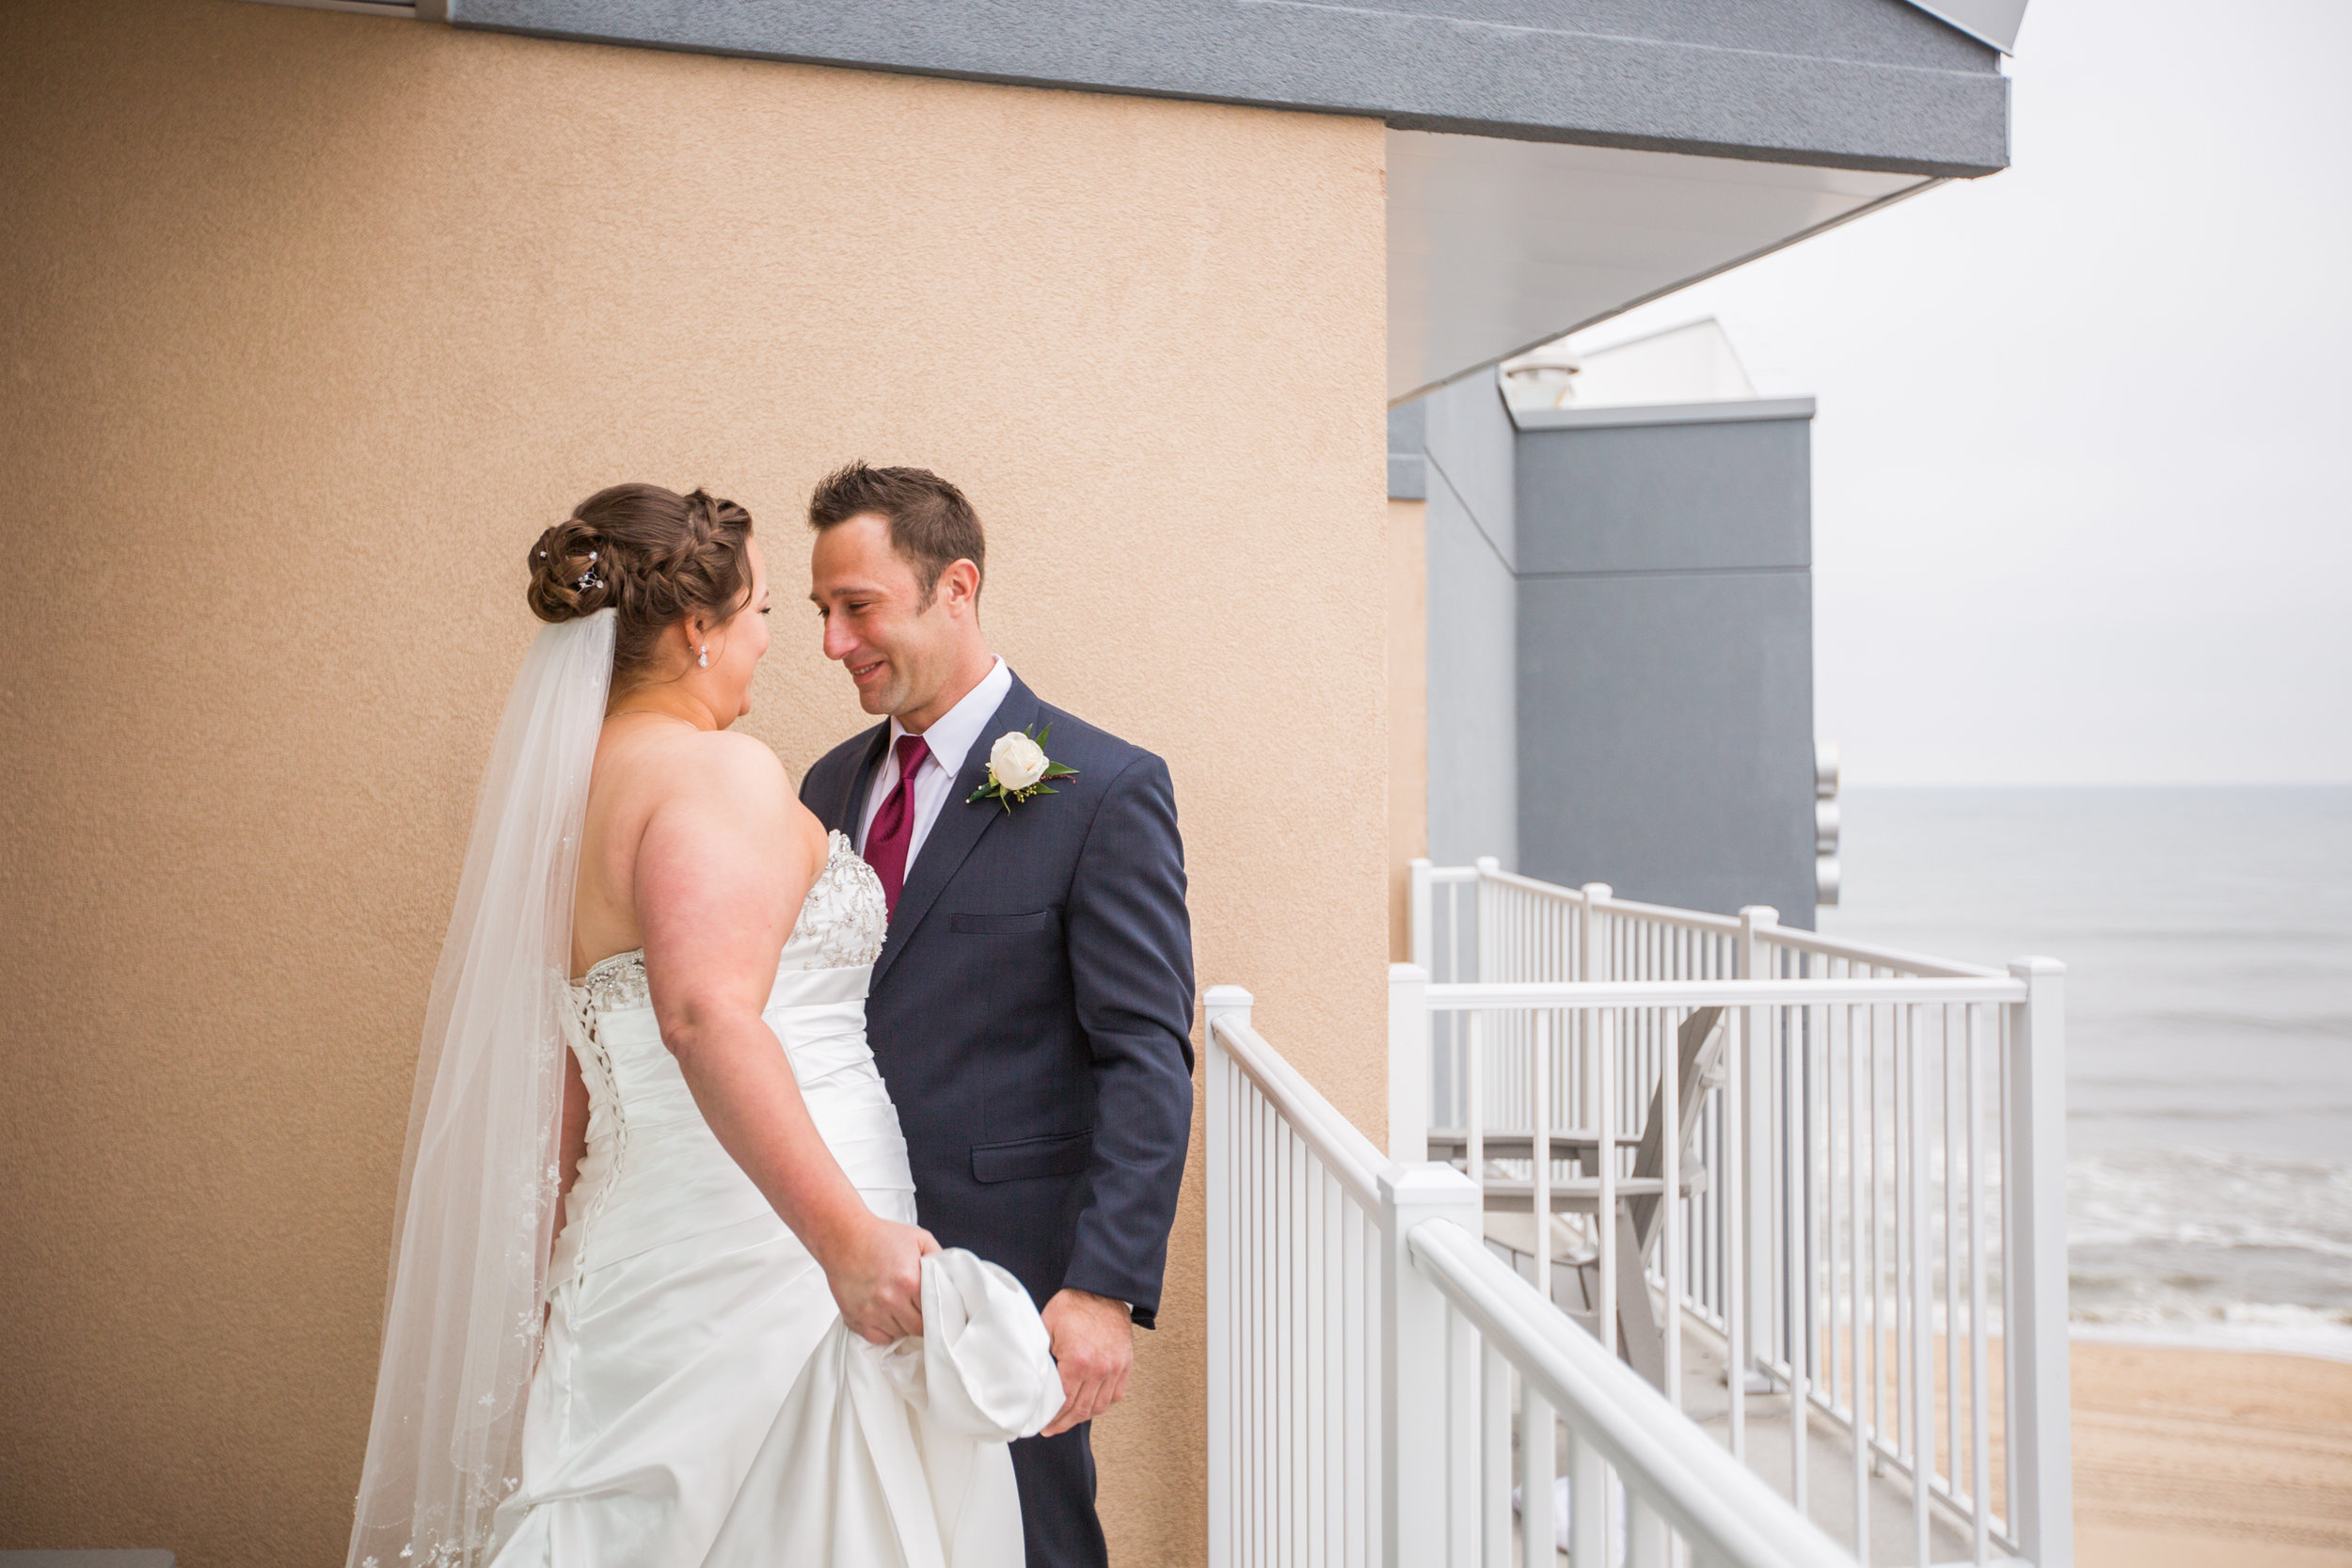 The couple does a first look from the balcony overlooking the Atlantic ocean at the Hyatt in Ocean City.